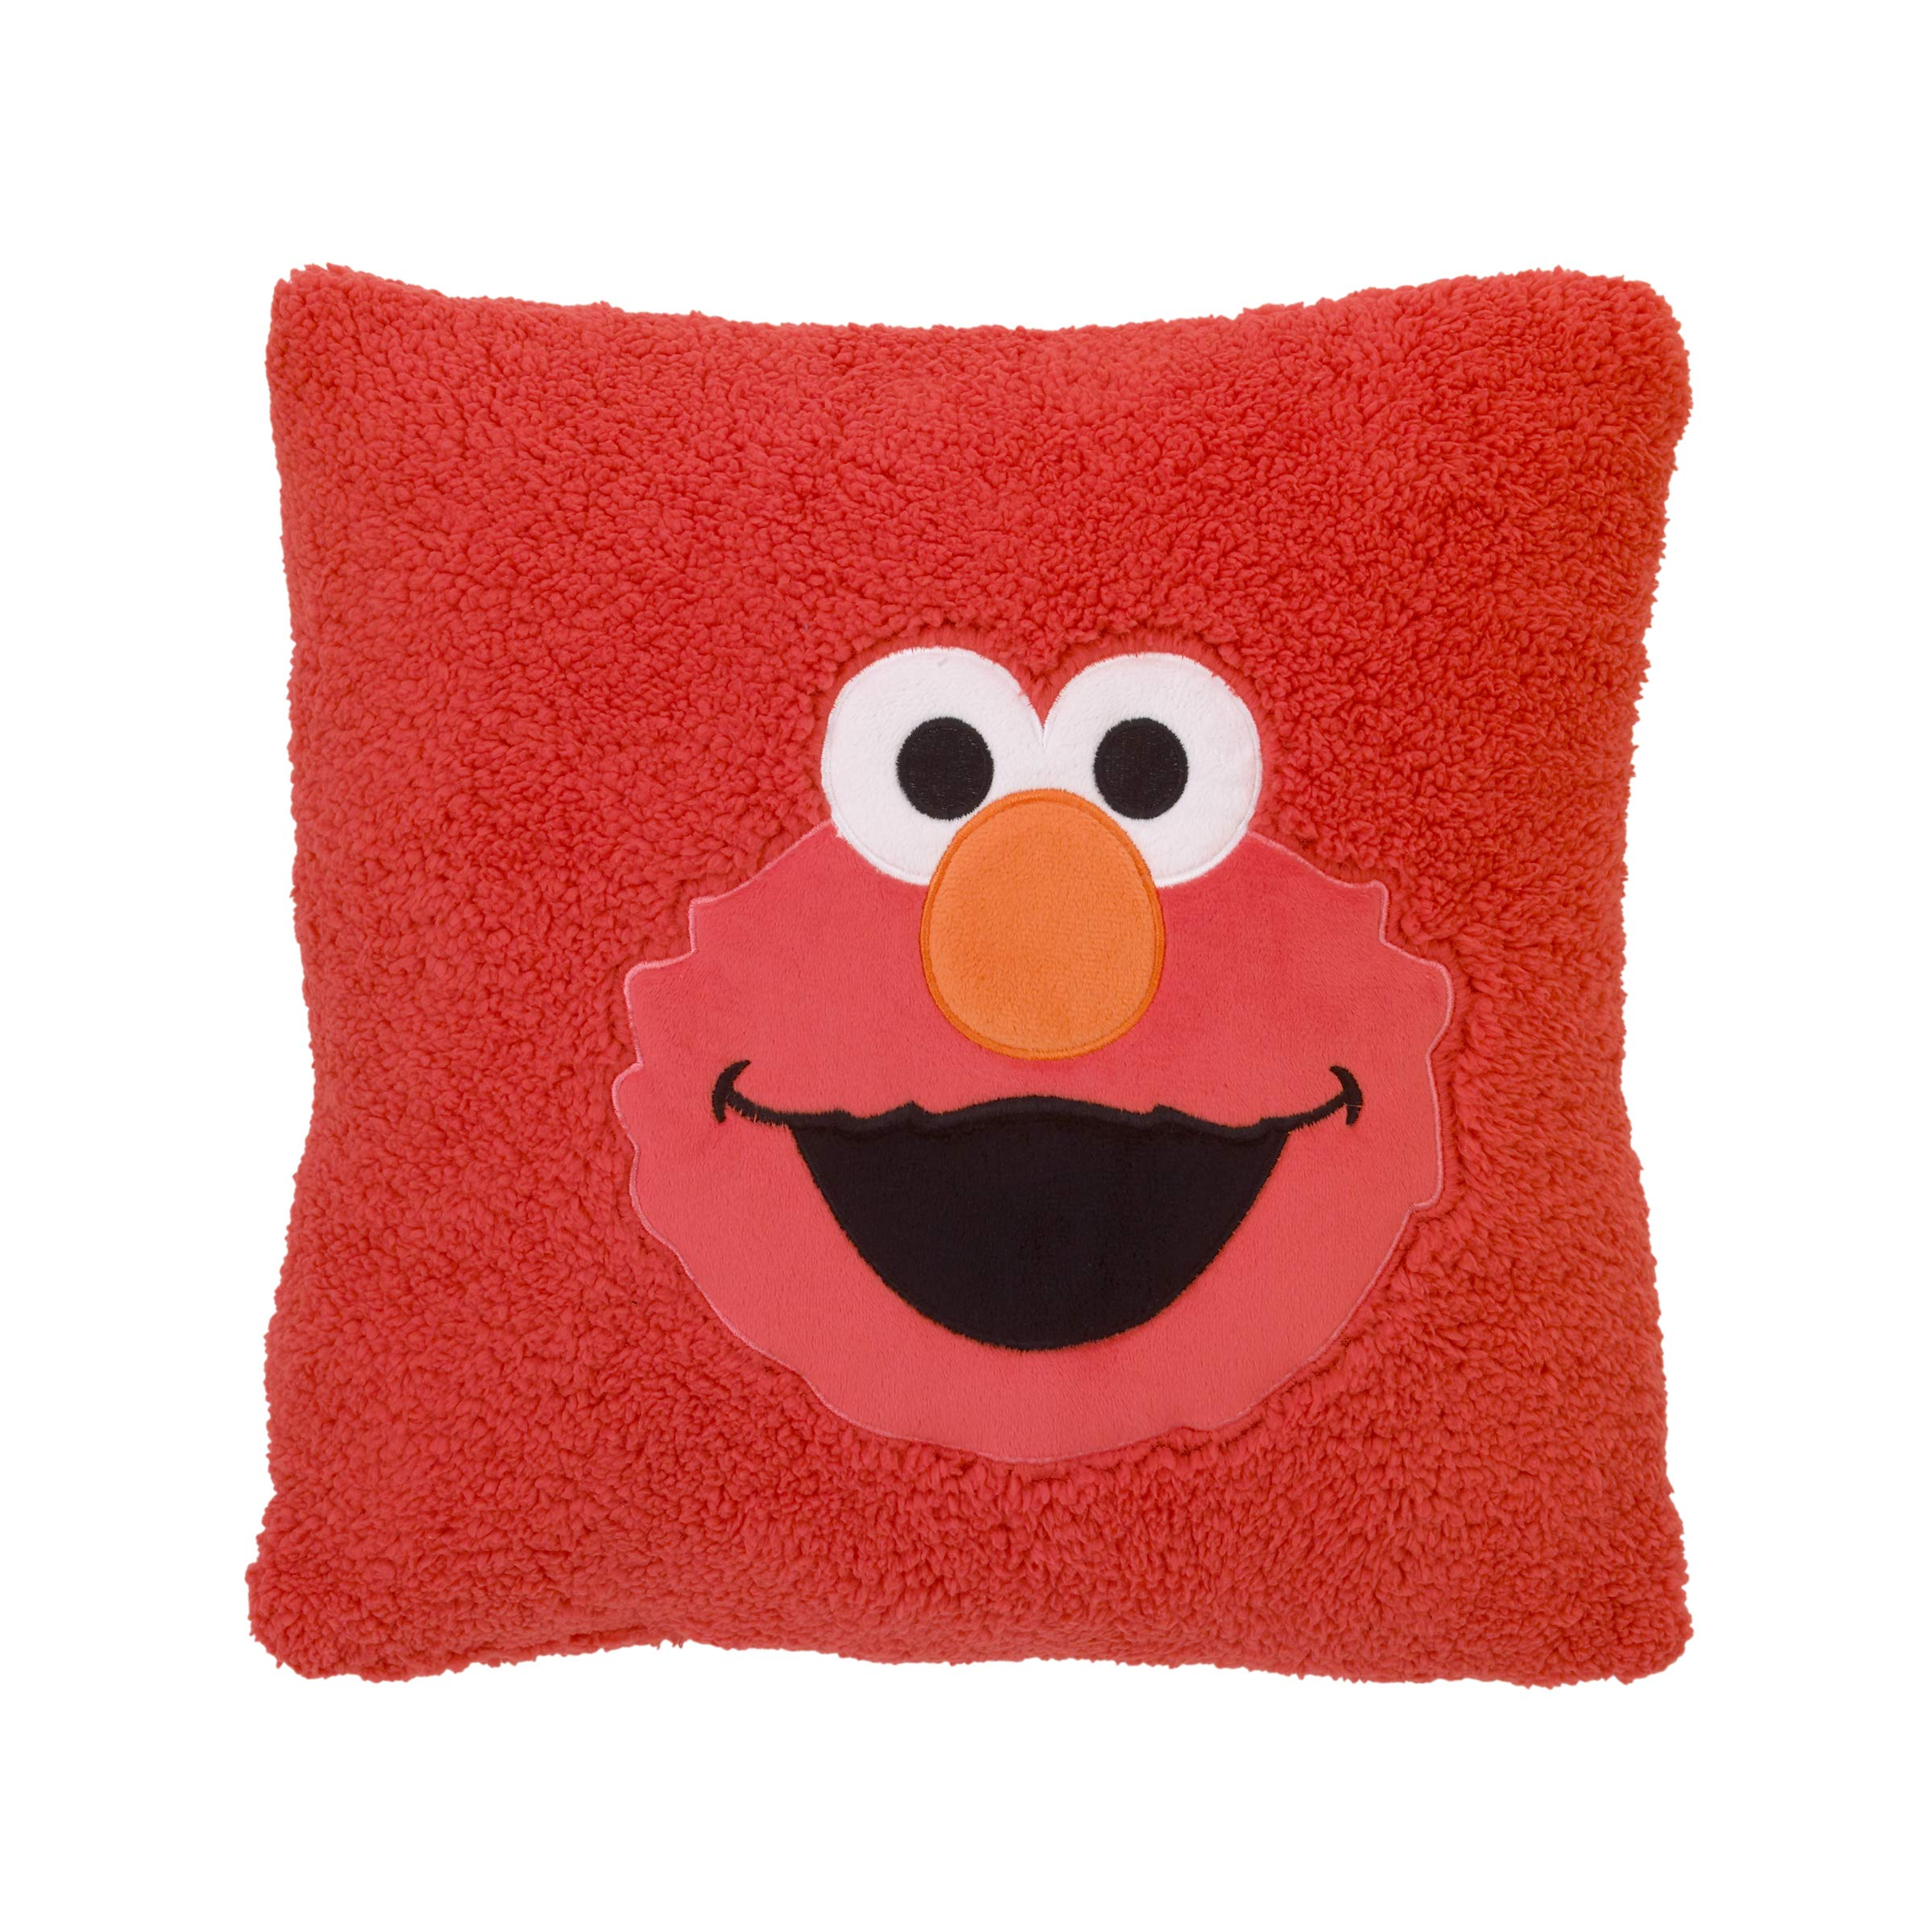 Sesame Street Elmo Red Super Soft Sherpa Toddler Pillow with Applique, Red/Orange/White/Black by Sesame Street